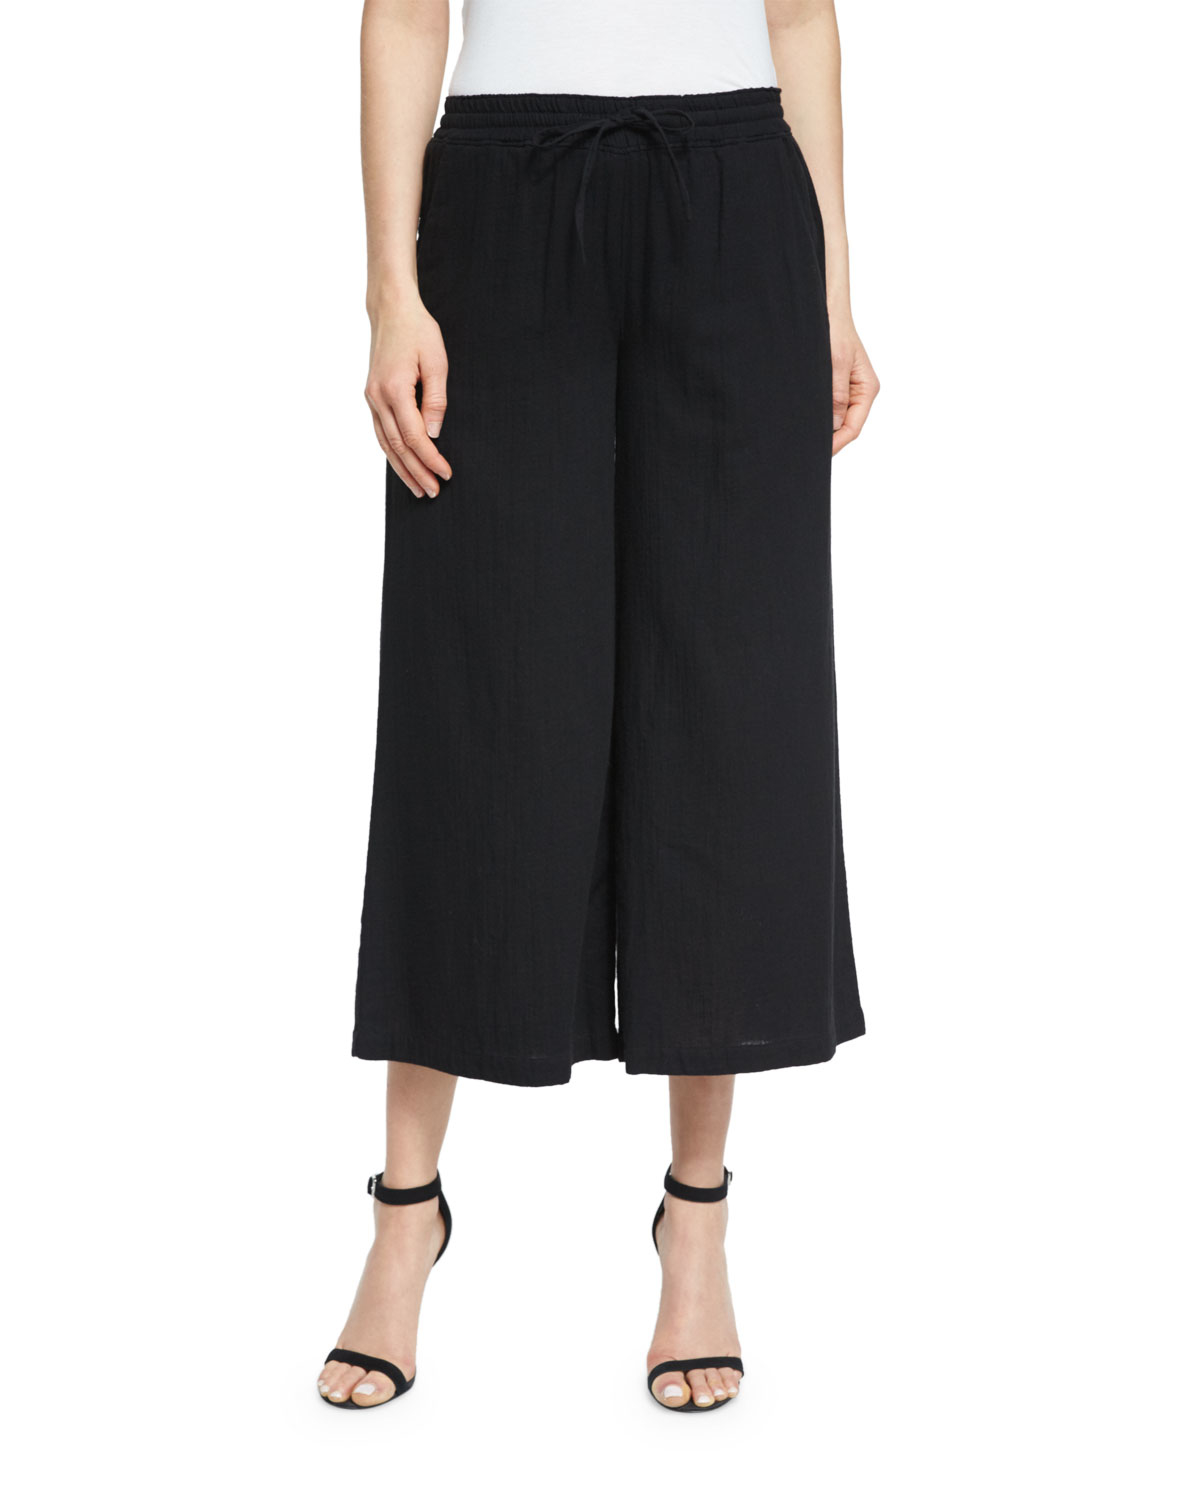 Think cropped styles and wide legs in an array of colours for comfort, without compromising on style. A black trouser is a wardrobe staple, be it for work or a smart casual outing. The seasonal change calls for a more relaxed fit - linen trousers are a key trend this season!